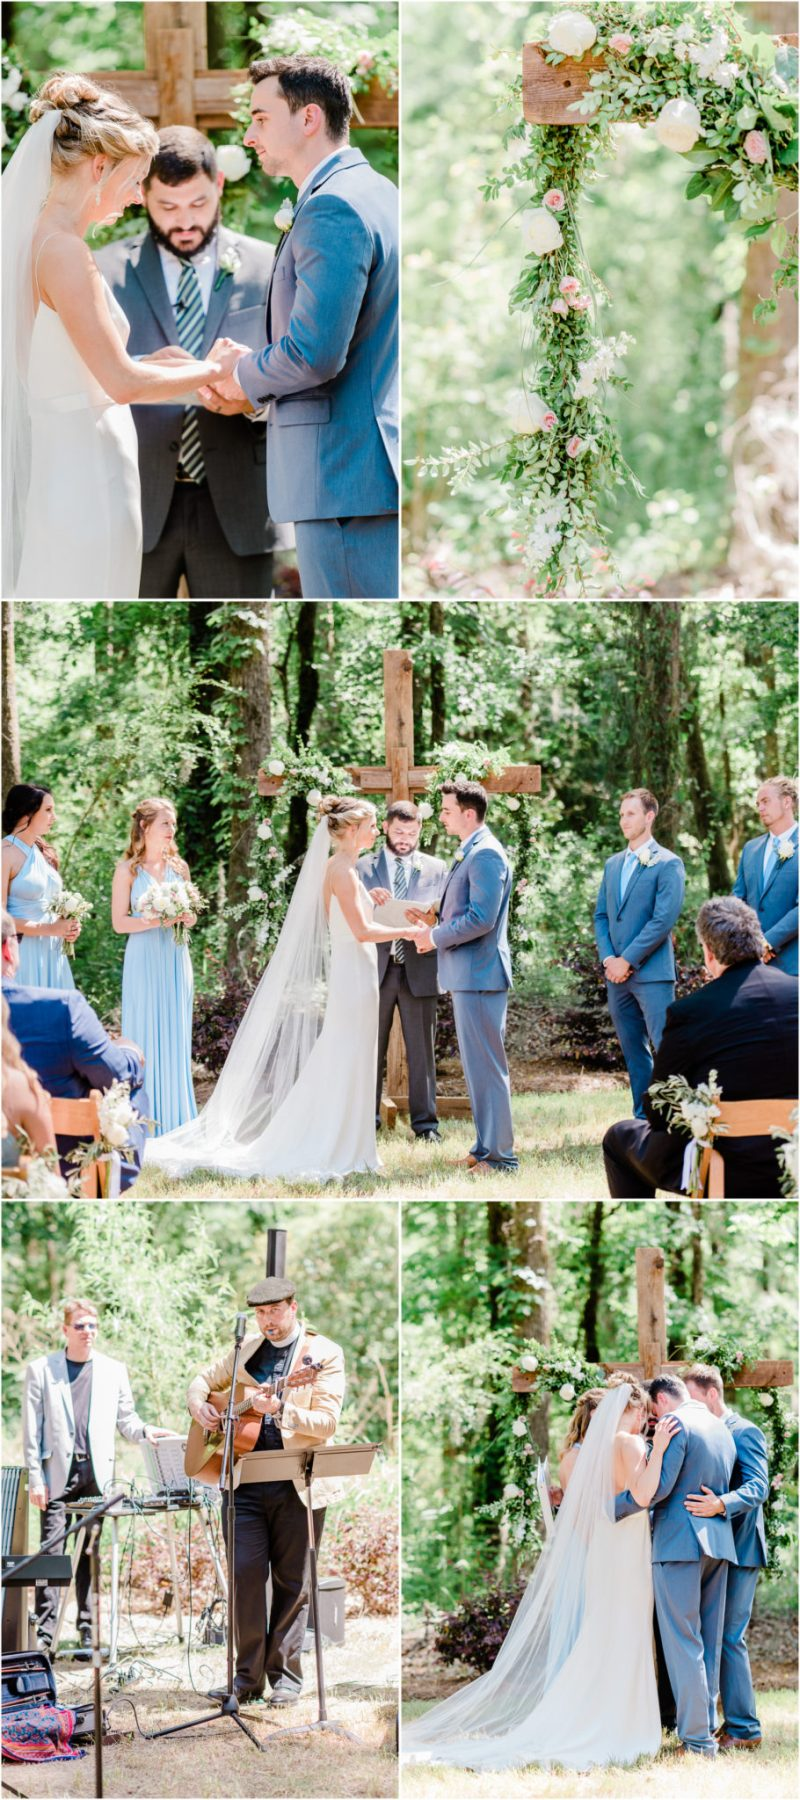 Millstone at Adams Pond Wedding in Columbia, SC ceremony